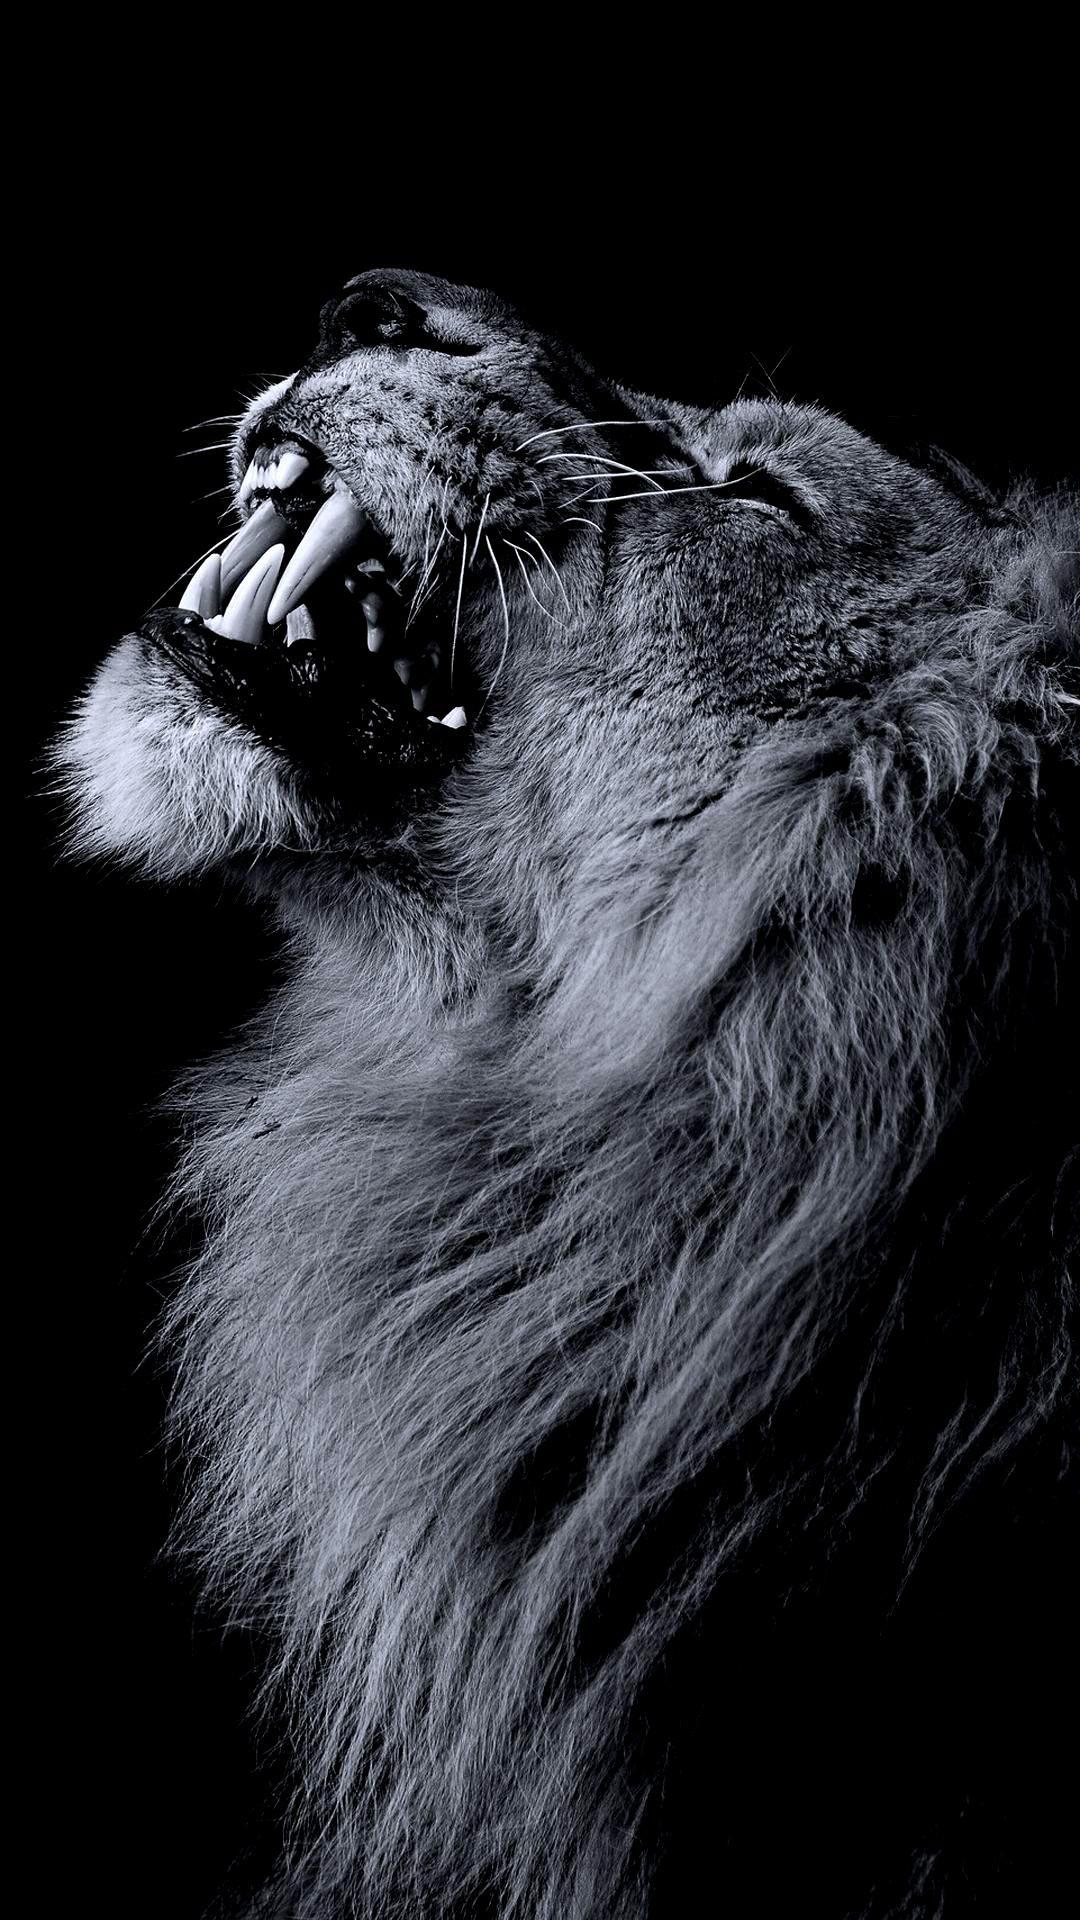 Black Lion Wallpaper 1080p Hupages Download Iphone Wallpapers